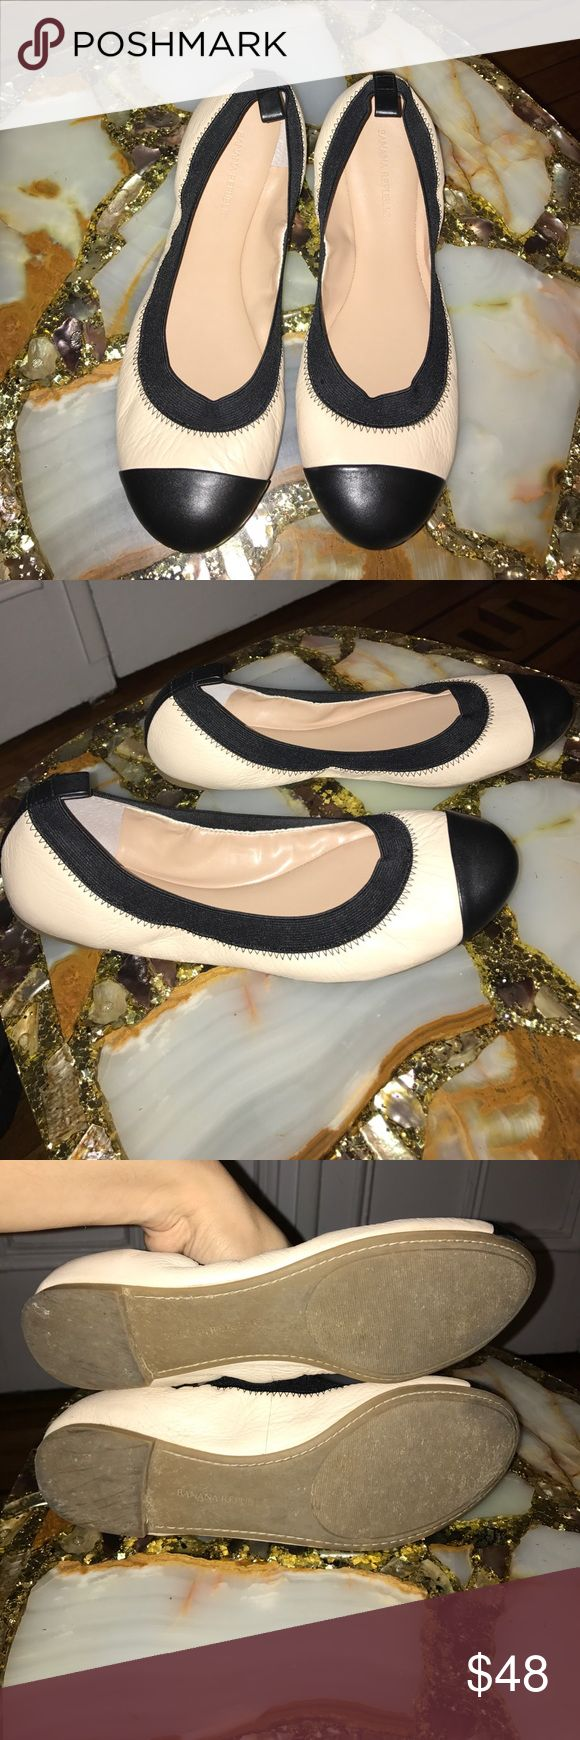 Banana Republic Aida Ballet Flats Size 8 Cute Banana Republic Flats Size 8. Used a handful of times. **No Trades**  ***Prices are negotiable, offers are welcomed***  Check out the bundle discount / I accept reasonable offers. Happy Shopping! 😊 Banana Republic Shoes Flats & Loafers